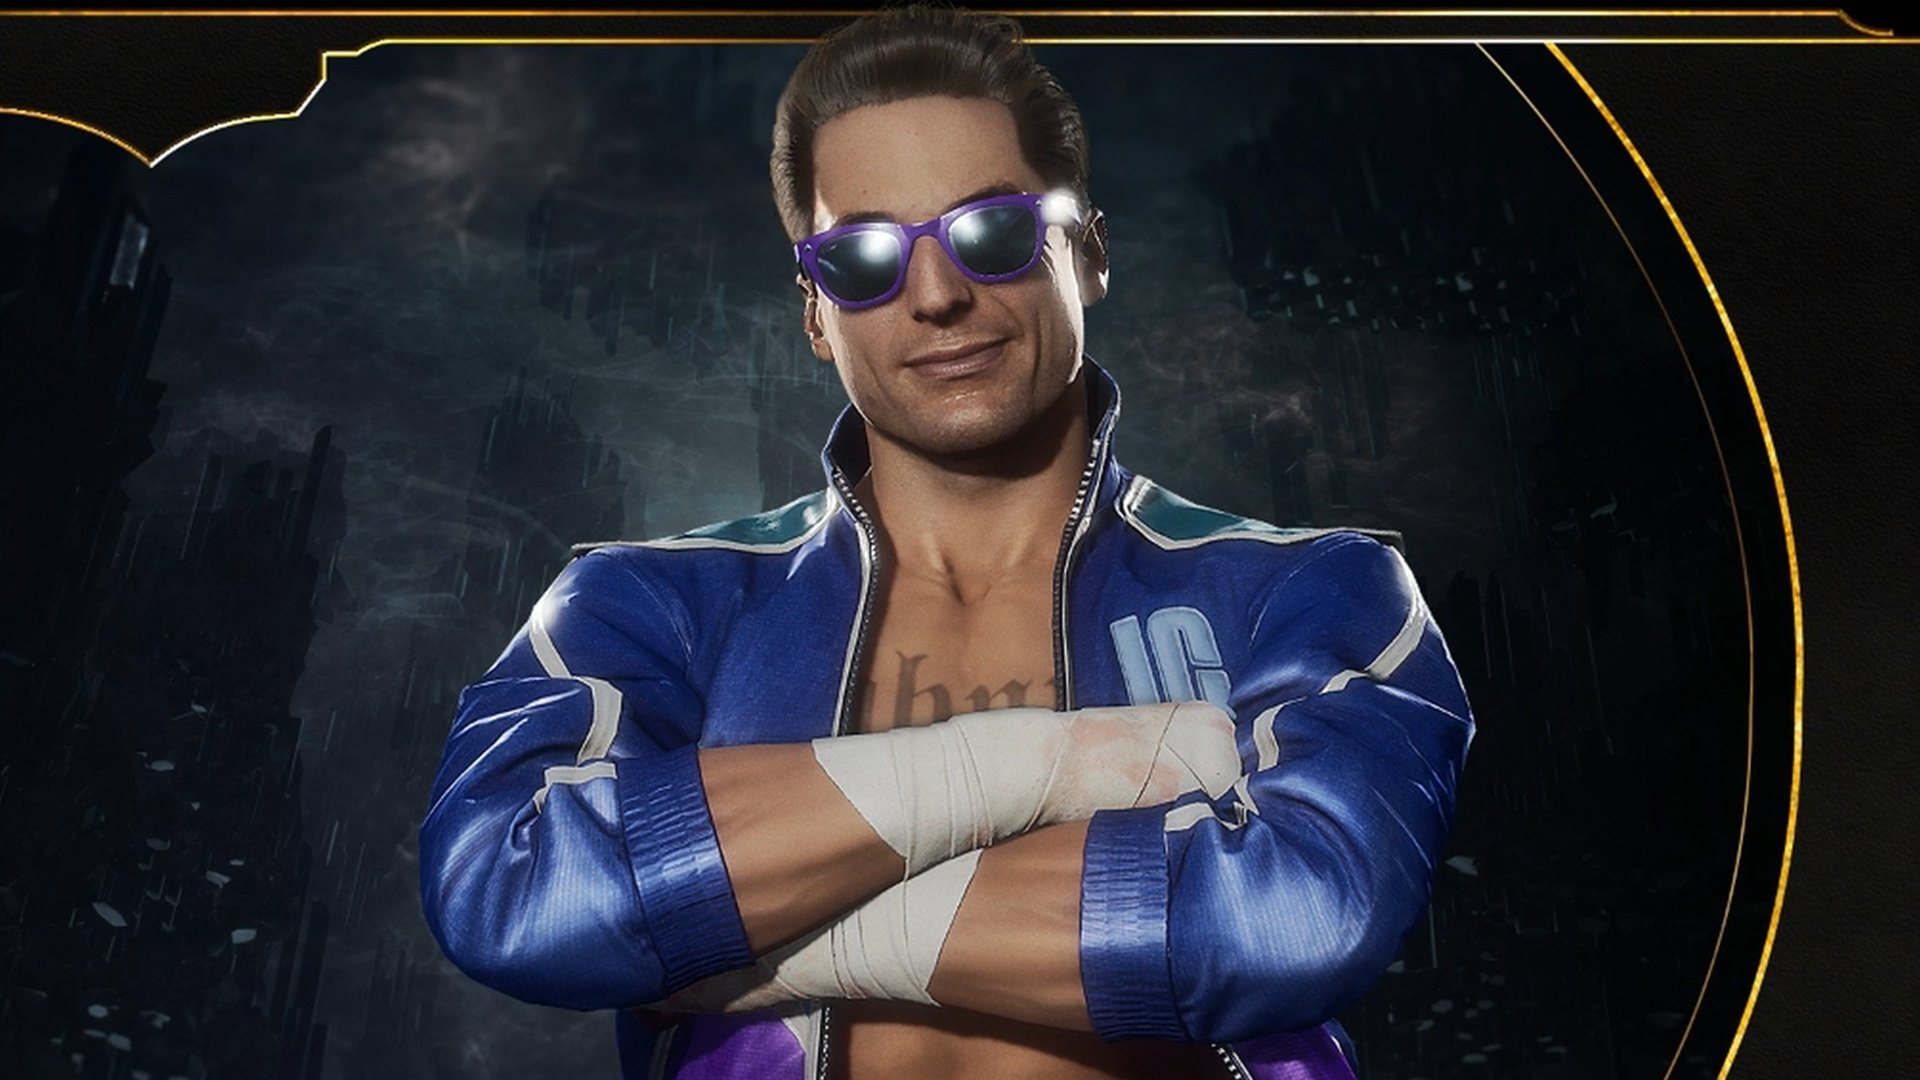 Johnny Cage may take the cake for best Mortal Kombat 11 fatalities screenshot